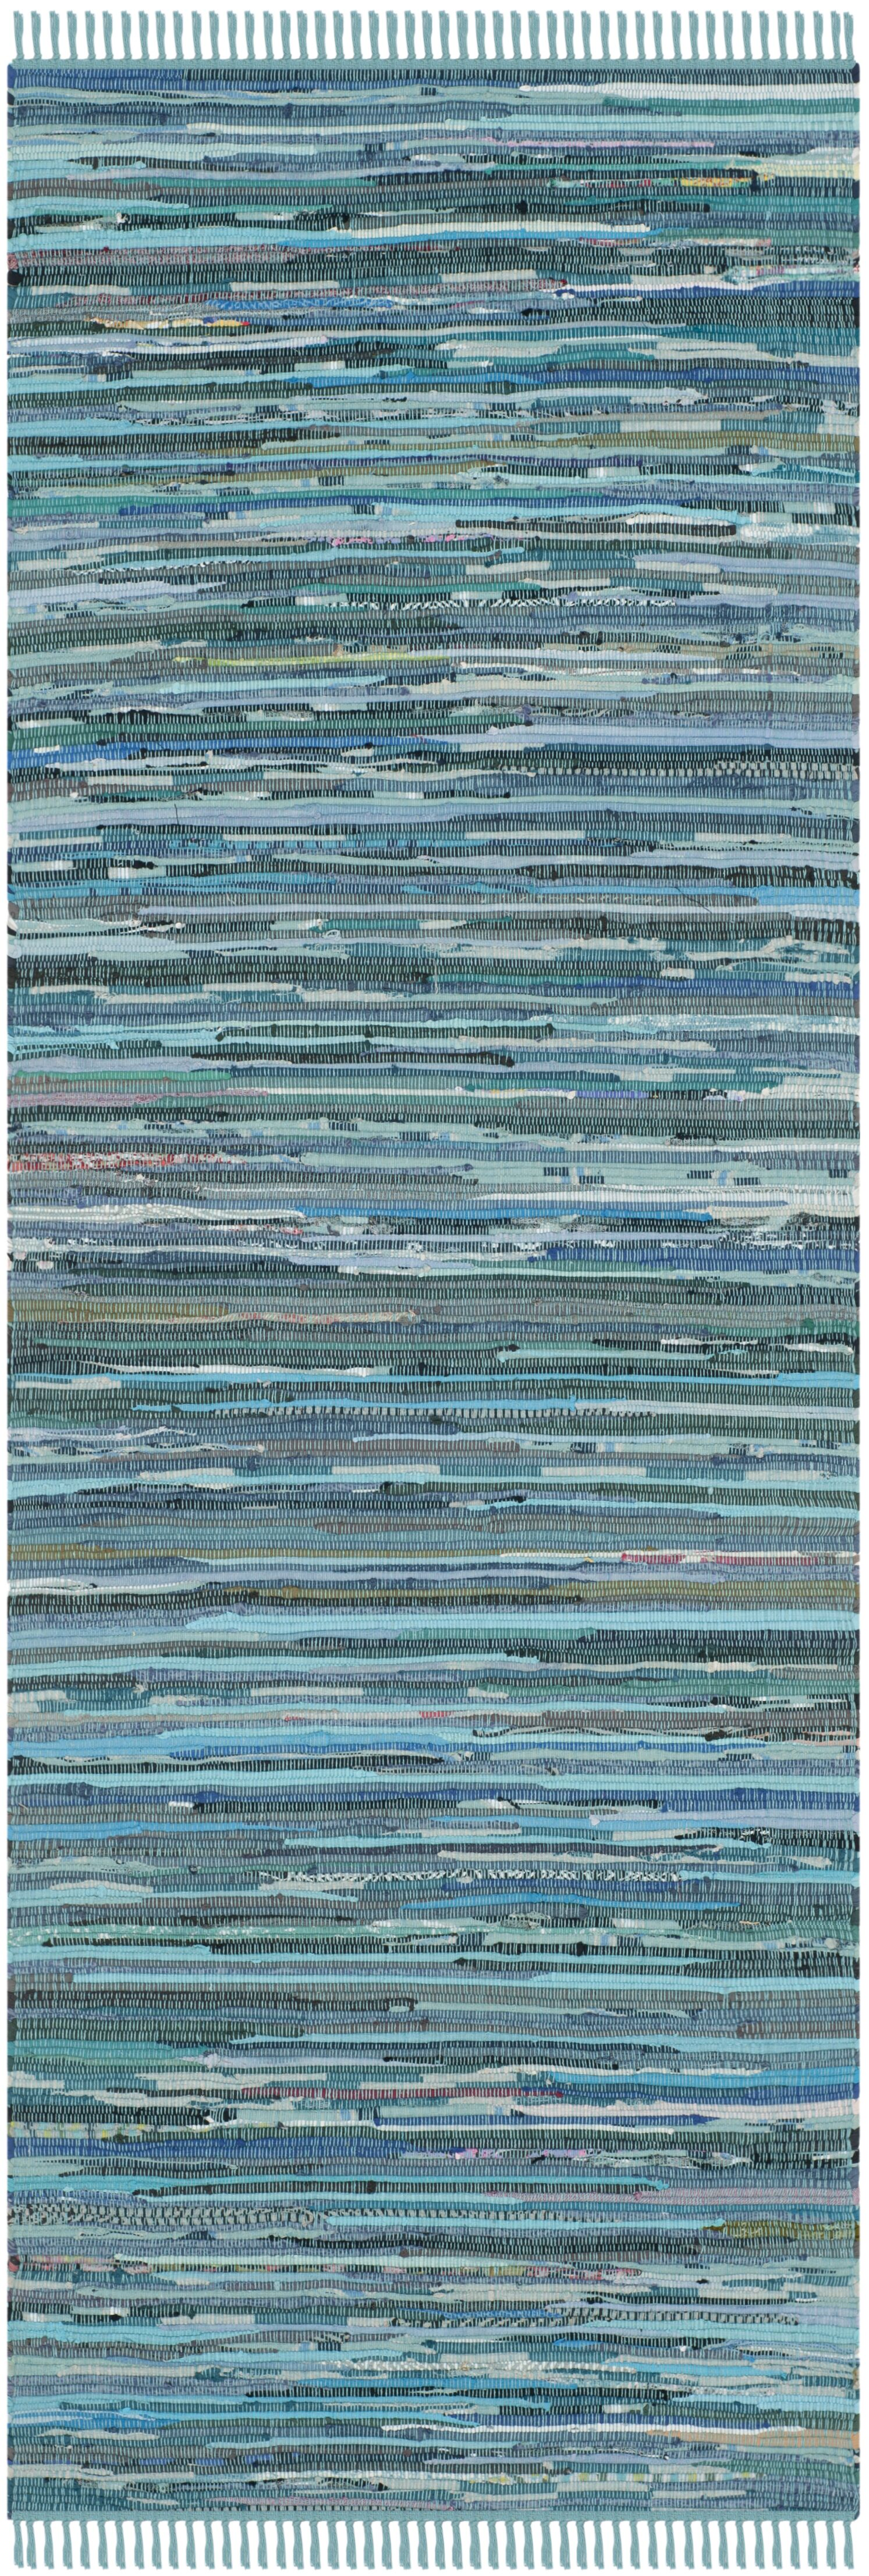 Inkom Hand-Woven Cotton Blue Area Rug Rug Size: Runner 2'3